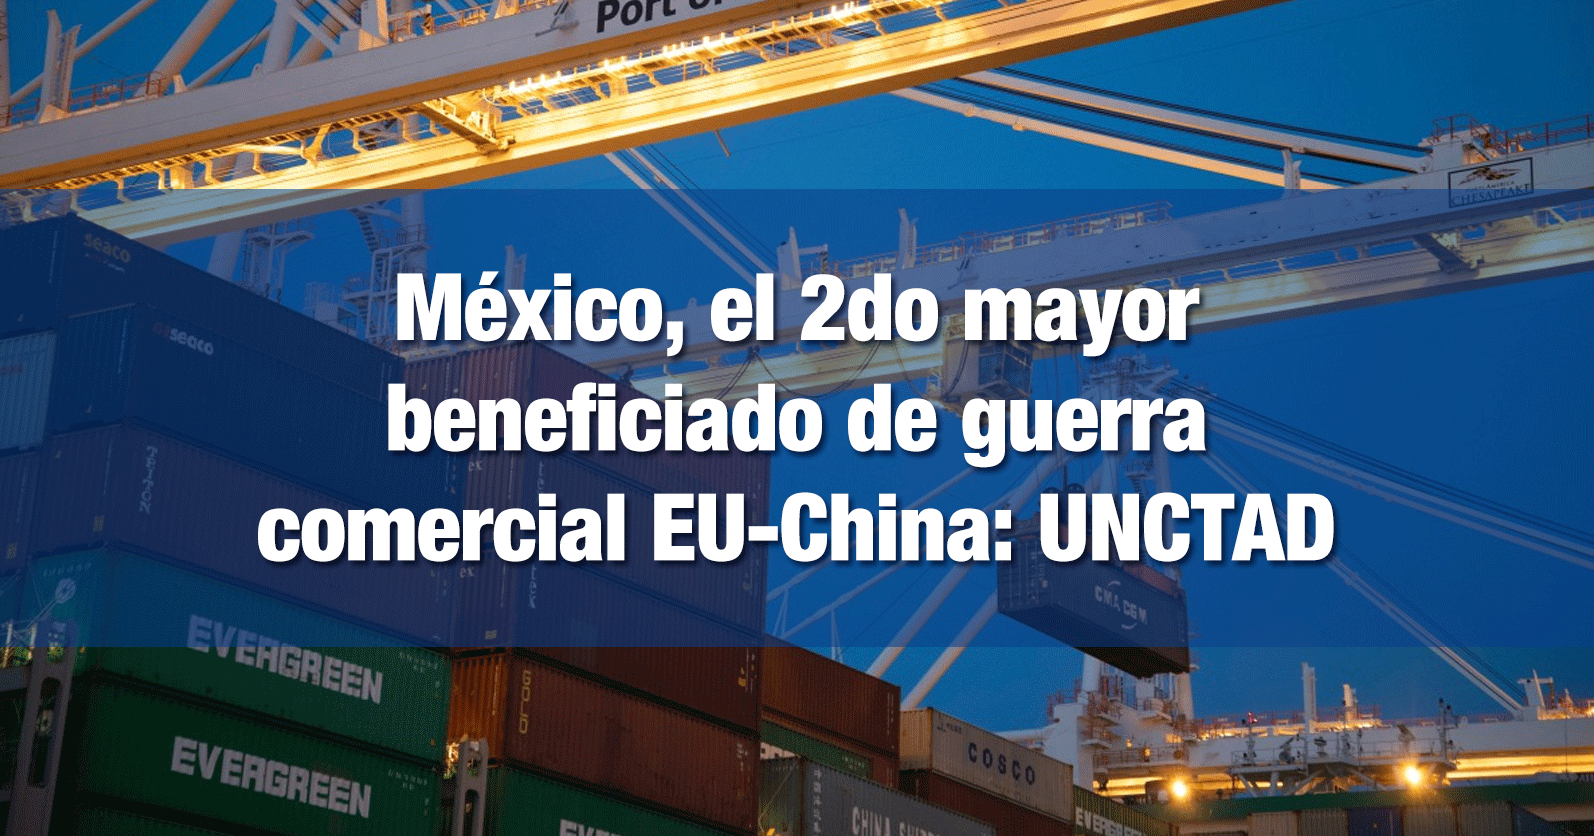 México, el 2do mayor beneficiado de guerra comercial EU-China: UNCTAD